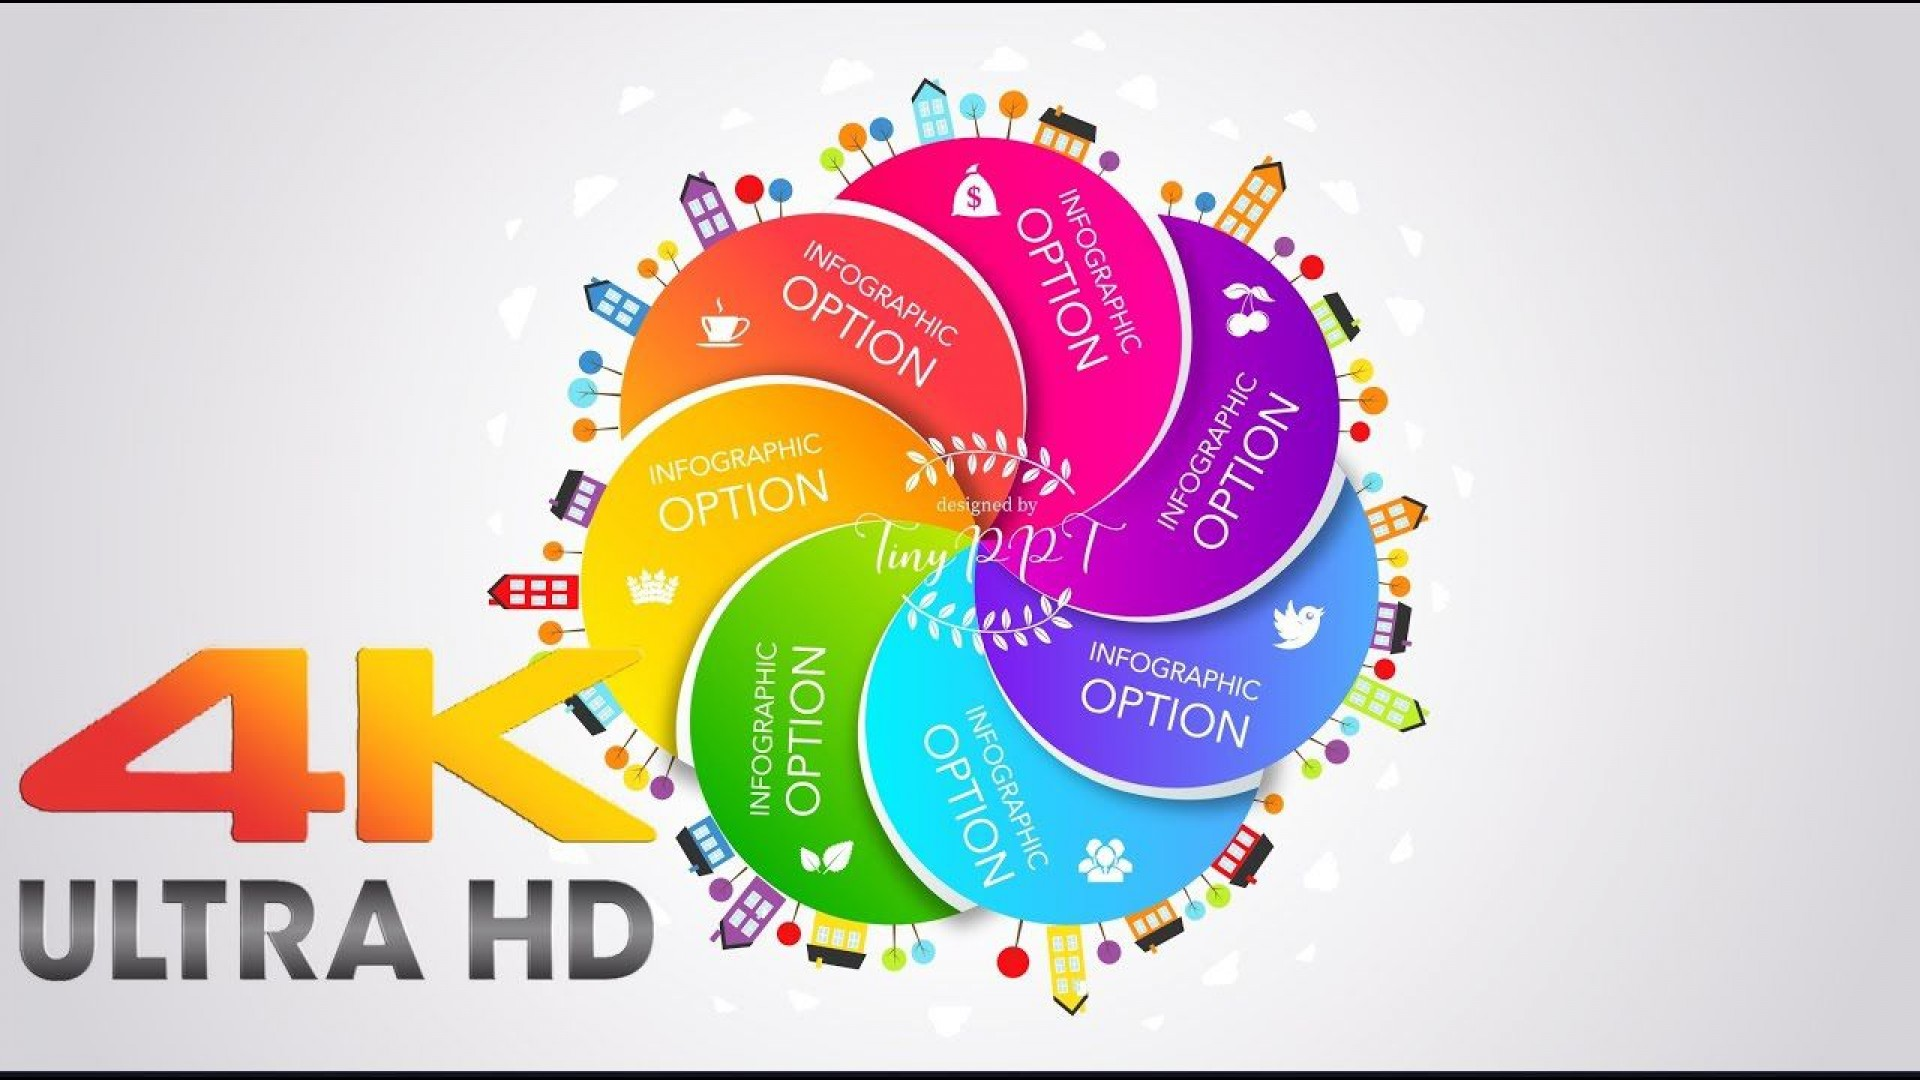 005 Unique 3d Animated Powerpoint Template Free Download 2013 High Resolution 1920